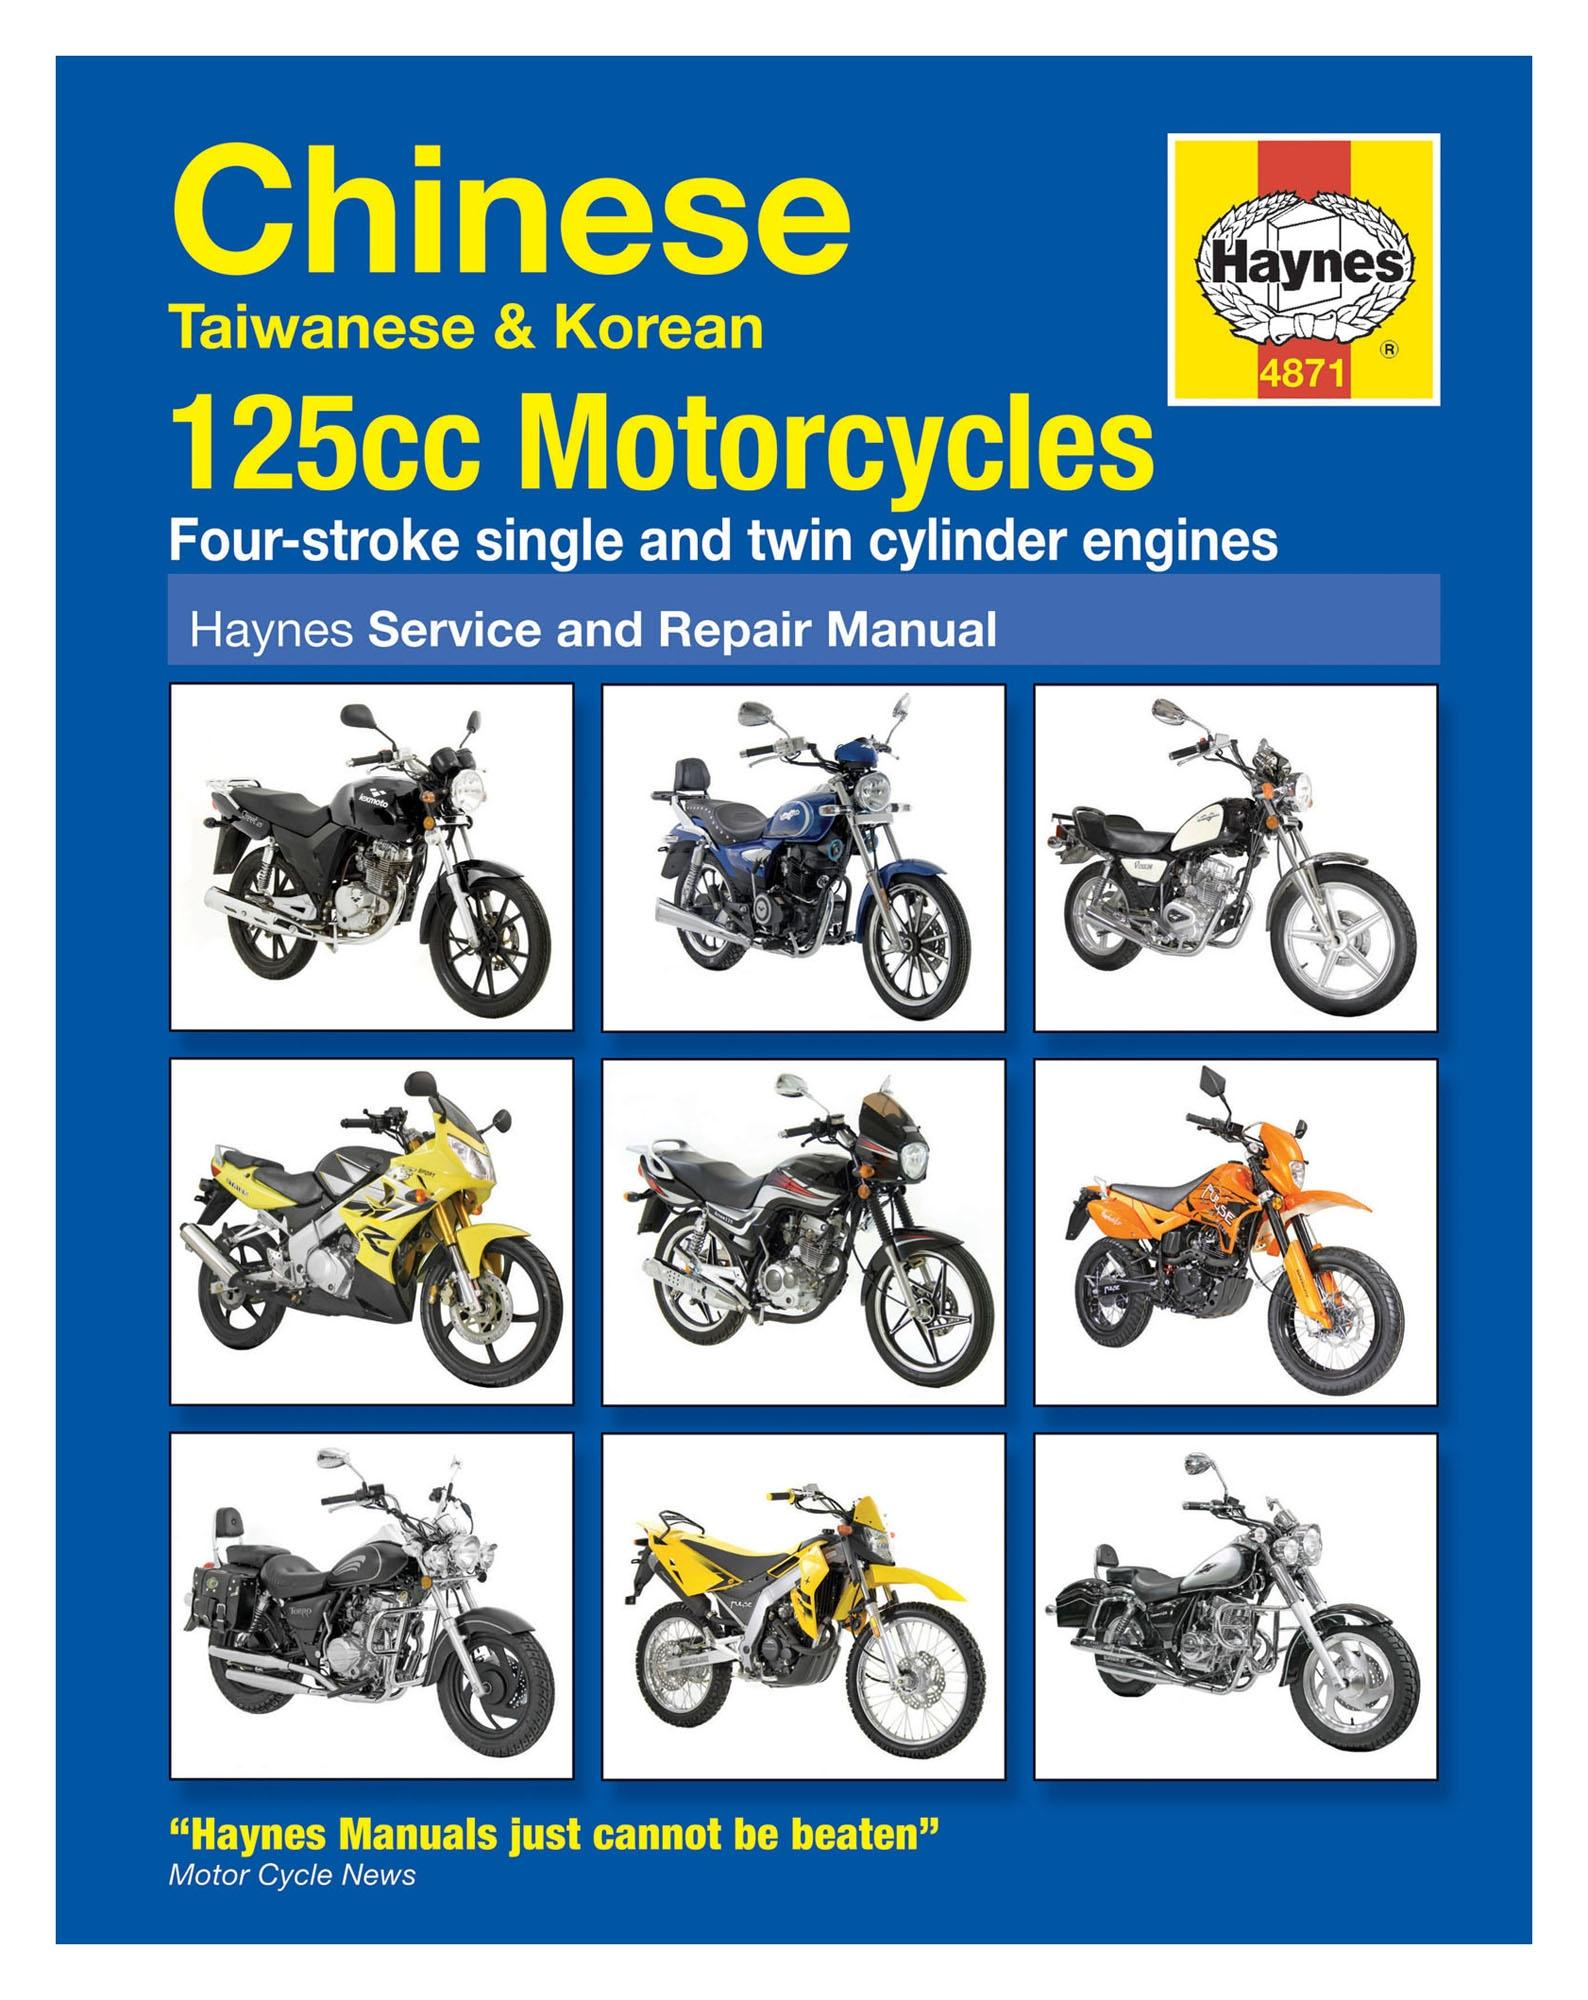 haynes chinese taiwanese korean rh halfords com Aluminum Motorcycle Guide Chicagoland Motorcycle Guide